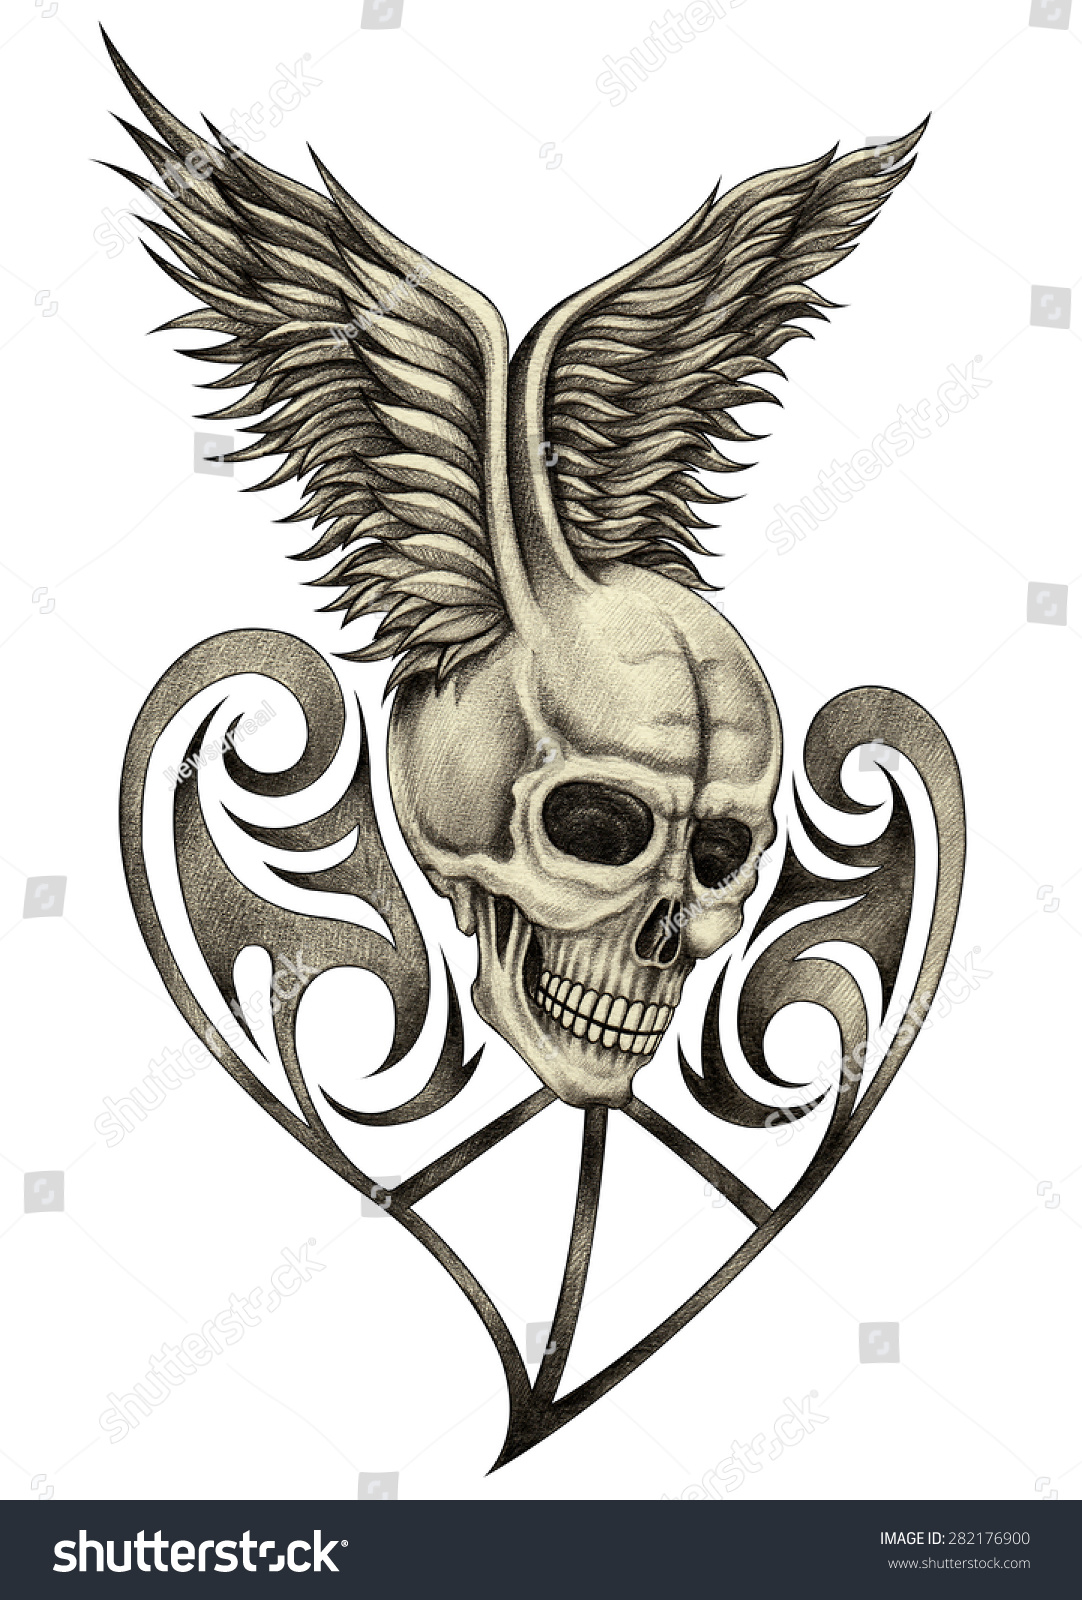 Cool Skull Drawings With Wings